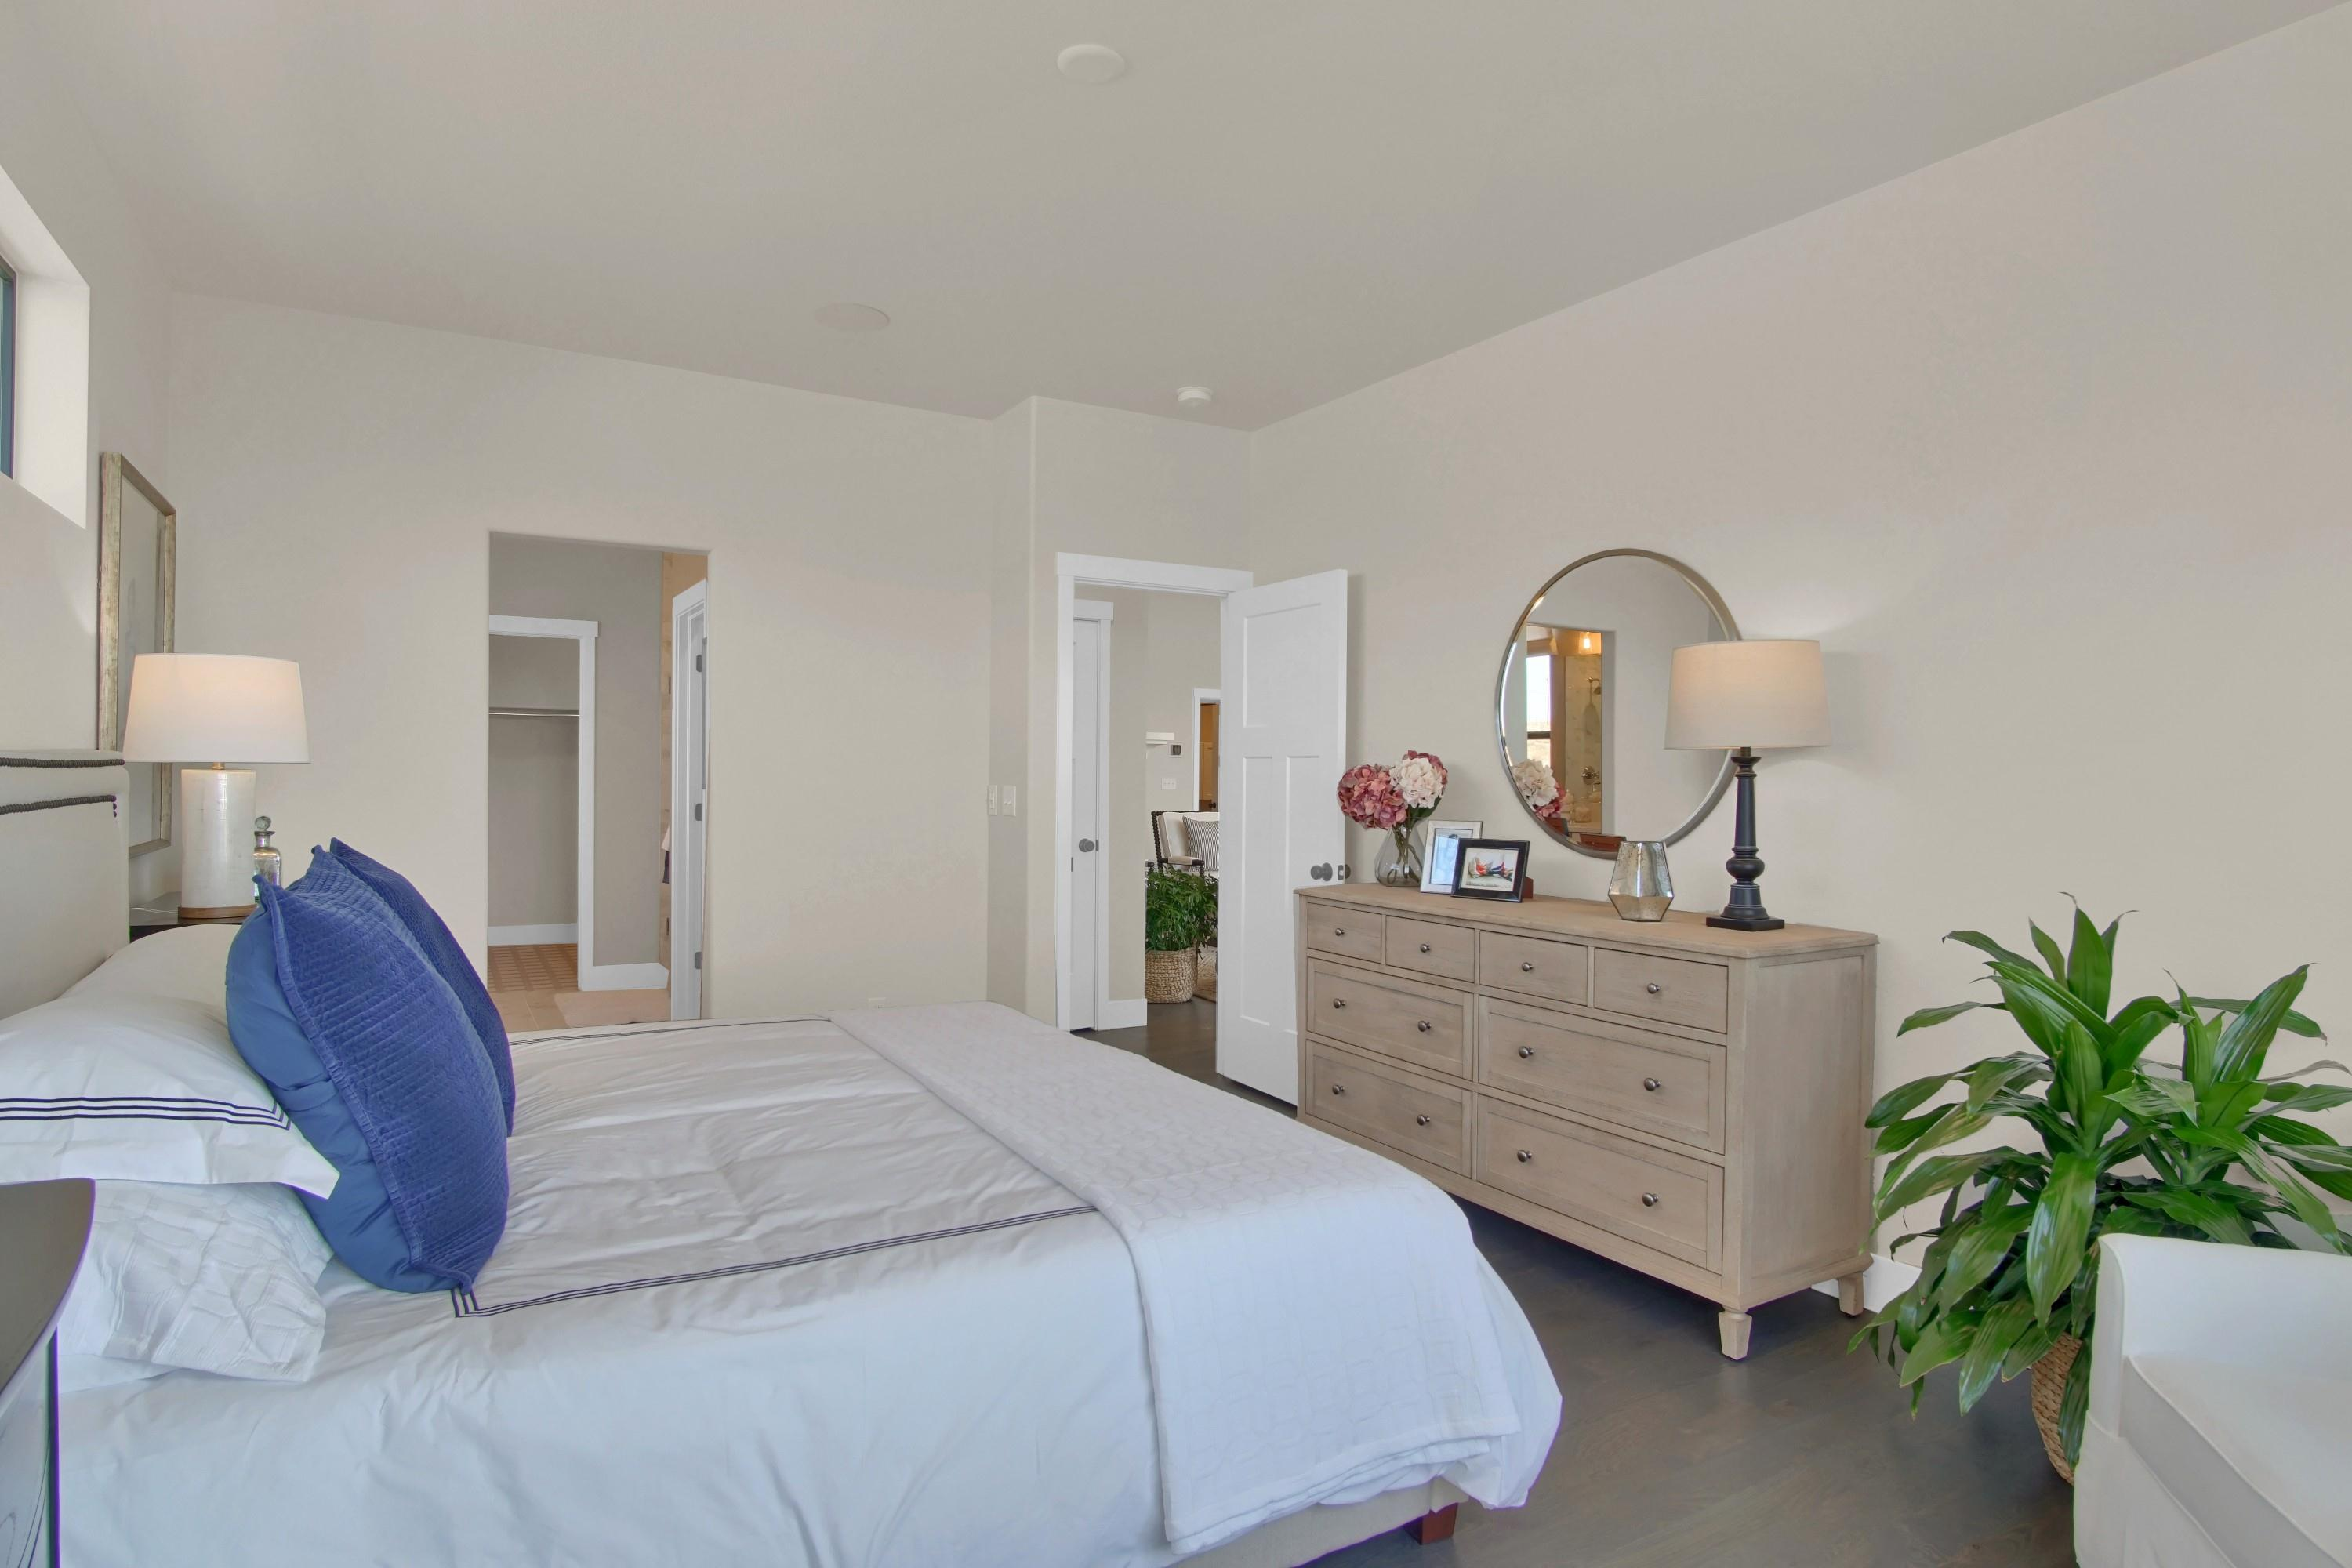 Bedroom featured in the Mackintosh By Keller Homes in Colorado Springs, CO